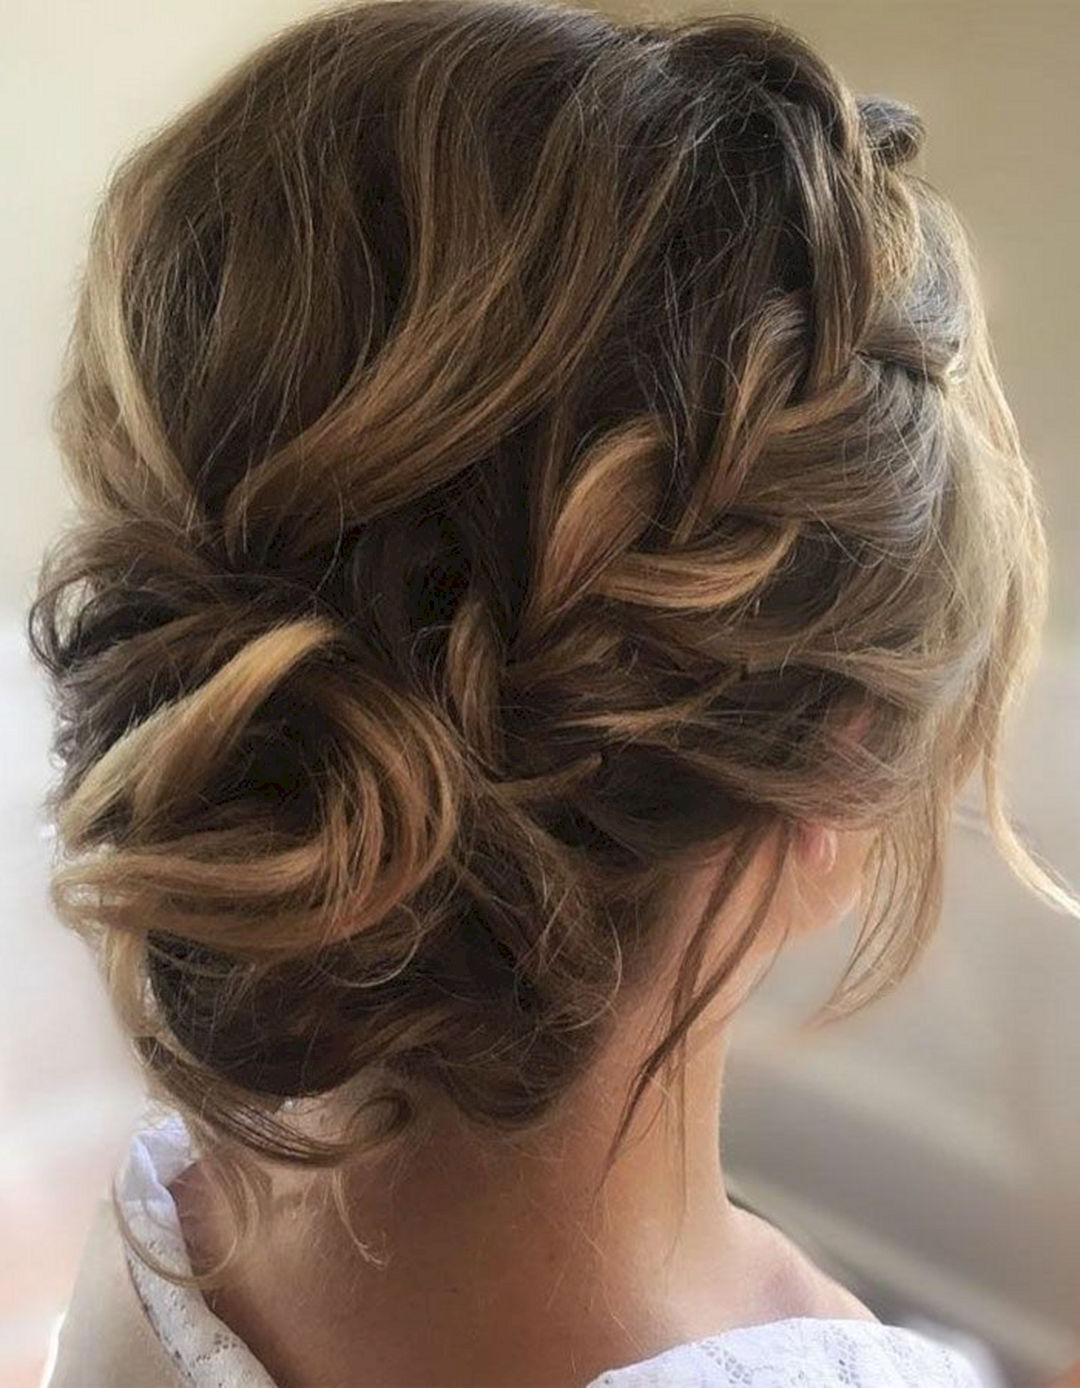 85+ Best Inspirations: Easy Braided Updo Ideas For Short Hair Https with regard to Short Hairstyles For Prom Updos